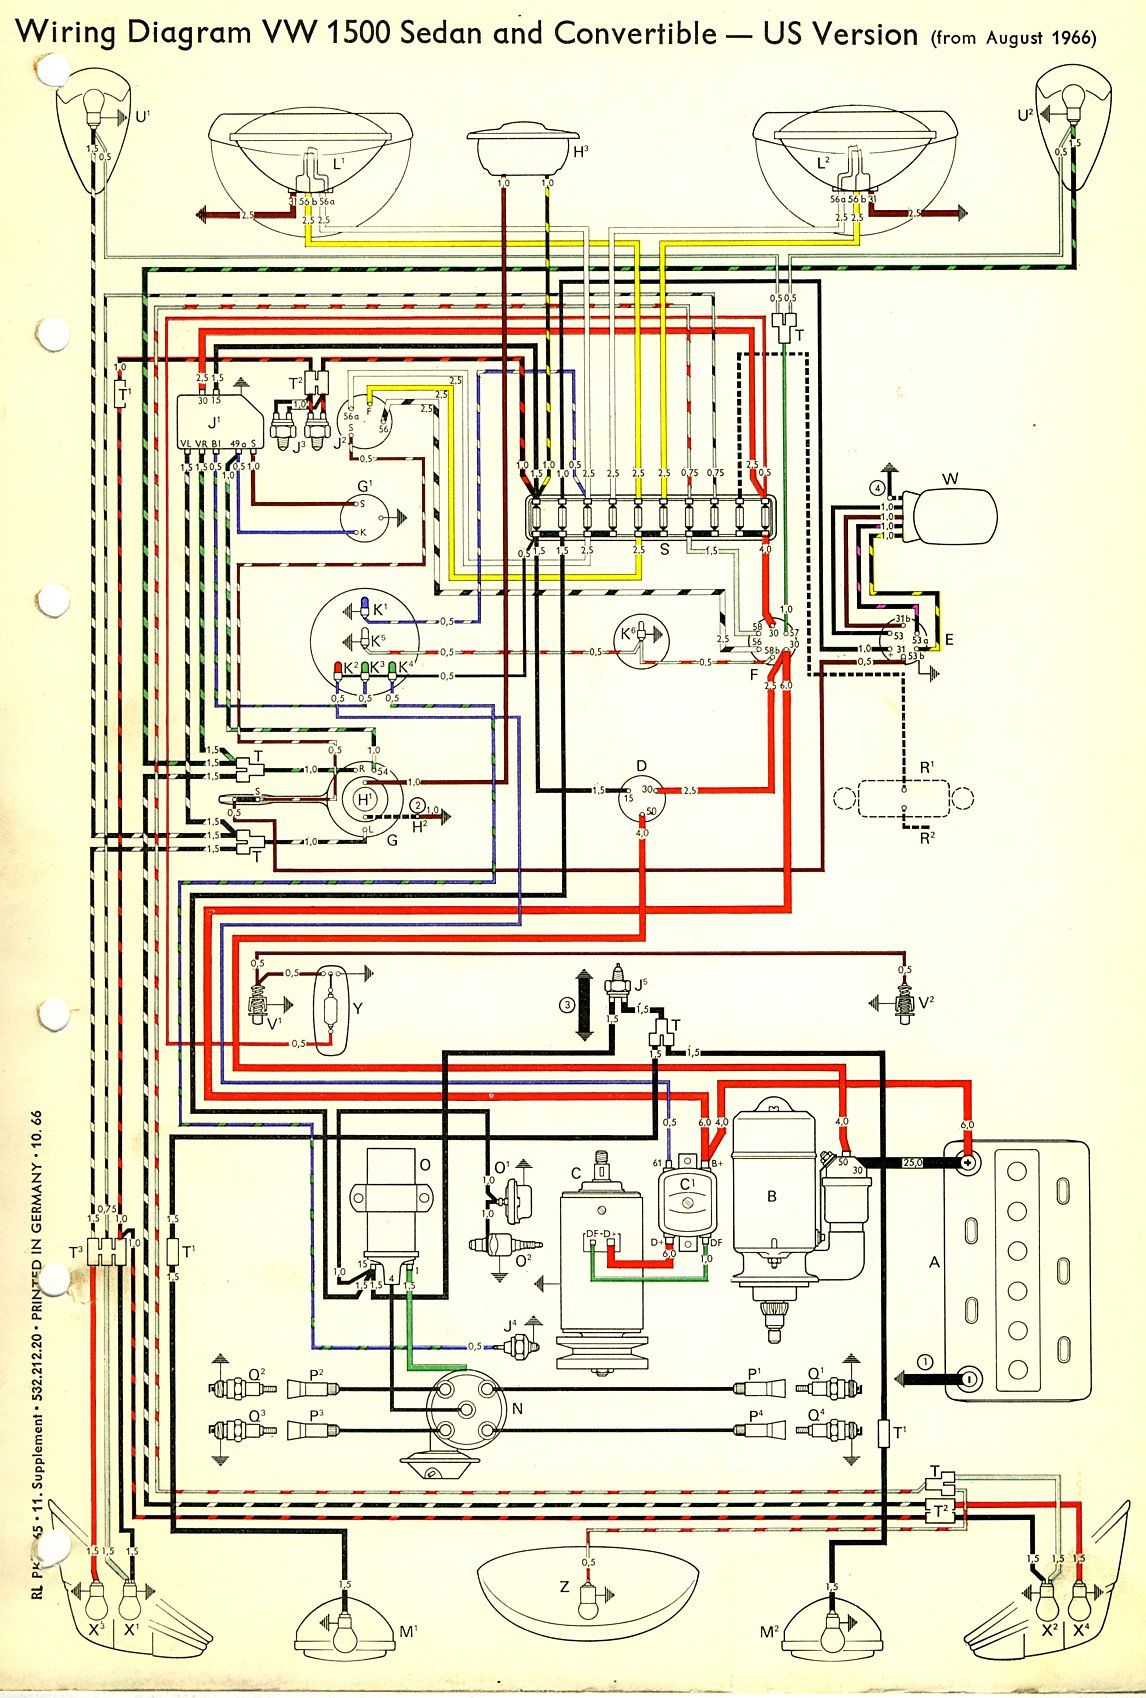 1967 beetle wiring diagram usa thegoldenbug com best 1967 vw rh pinterest  com Chevy S10 Speedometer Wiring Diagrams Electric Speedometer Gauge Wiring  ...